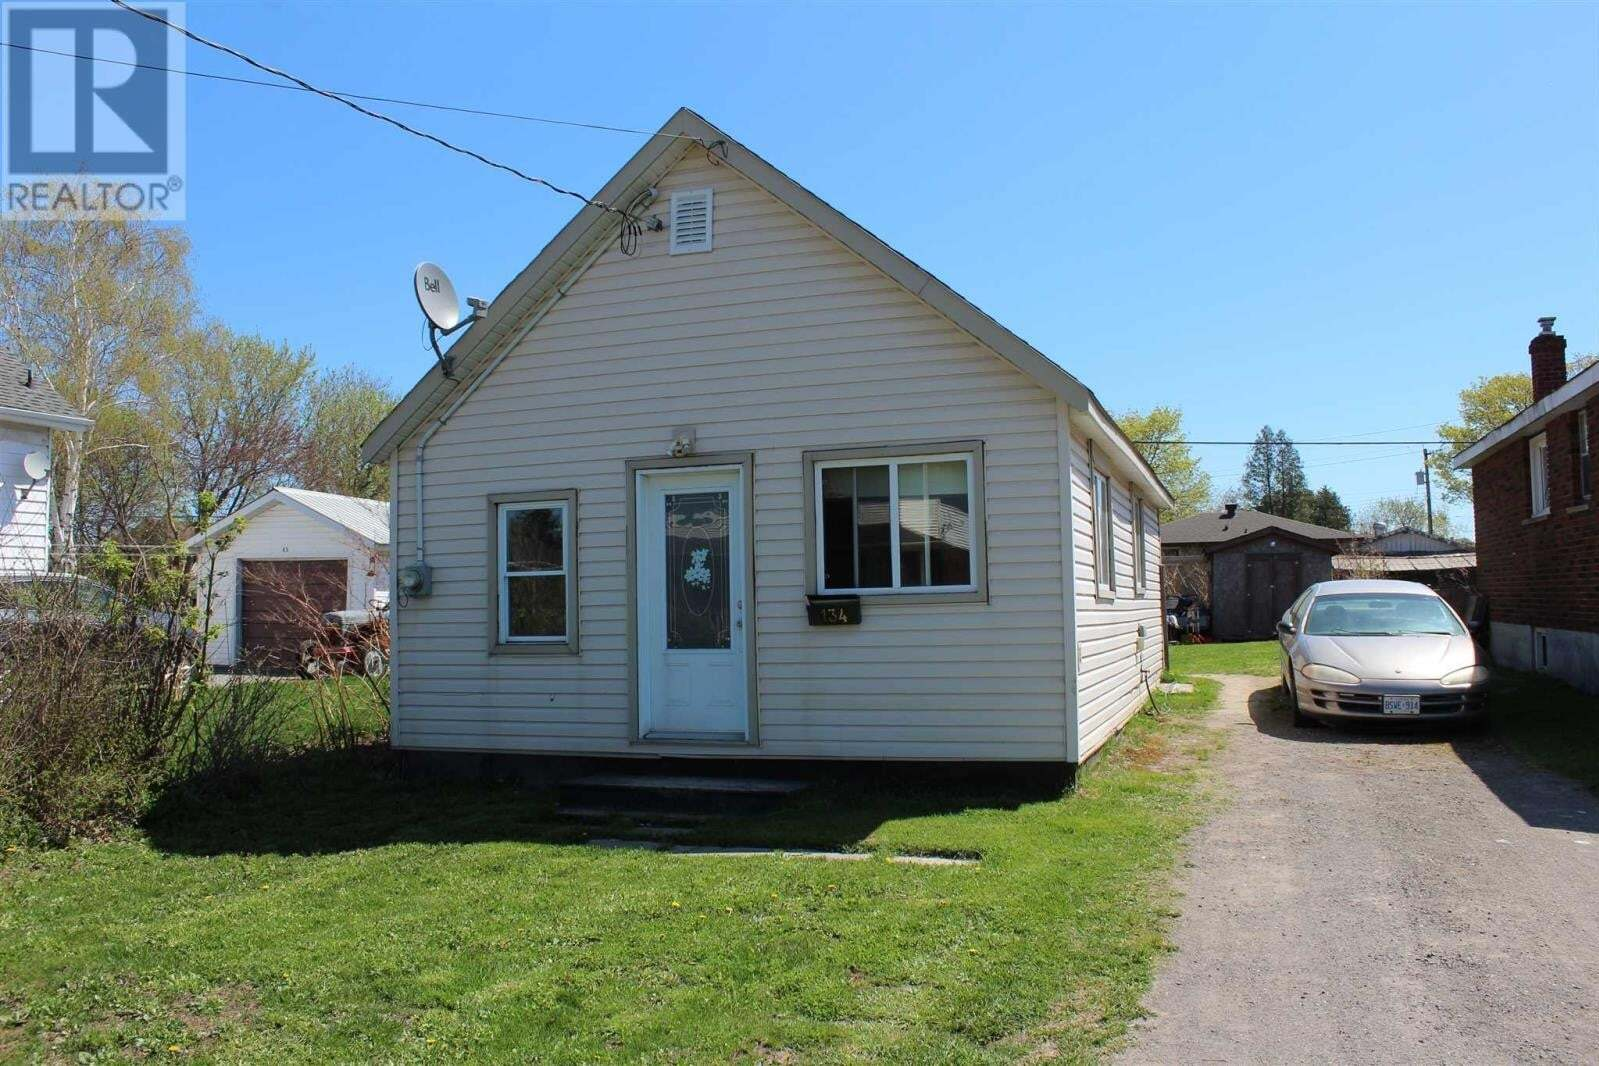 House for sale at 134 Mcfadden Ave Sault Ste. Marie Ontario - MLS: SM128580